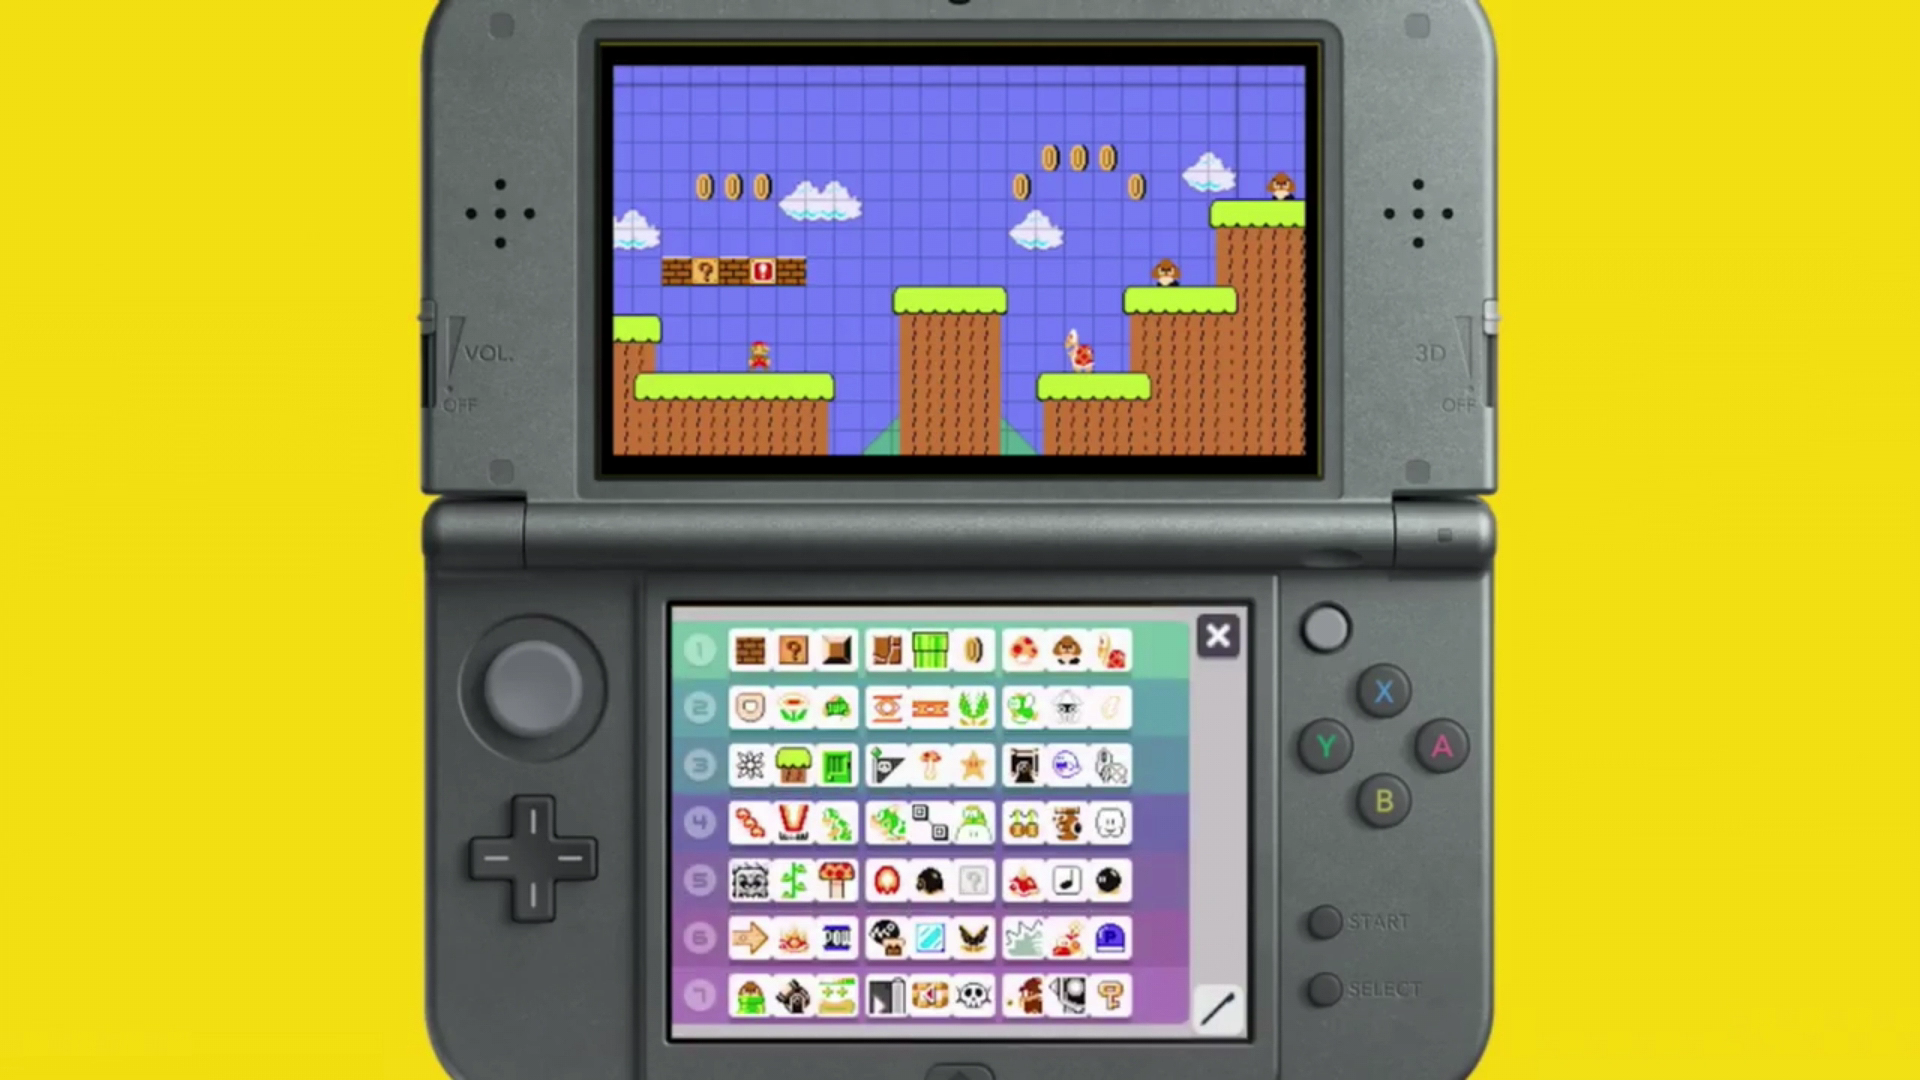 Super Mario Maker Releasing On 3DS In December With Some Feature Limitations | Kotaku Australia